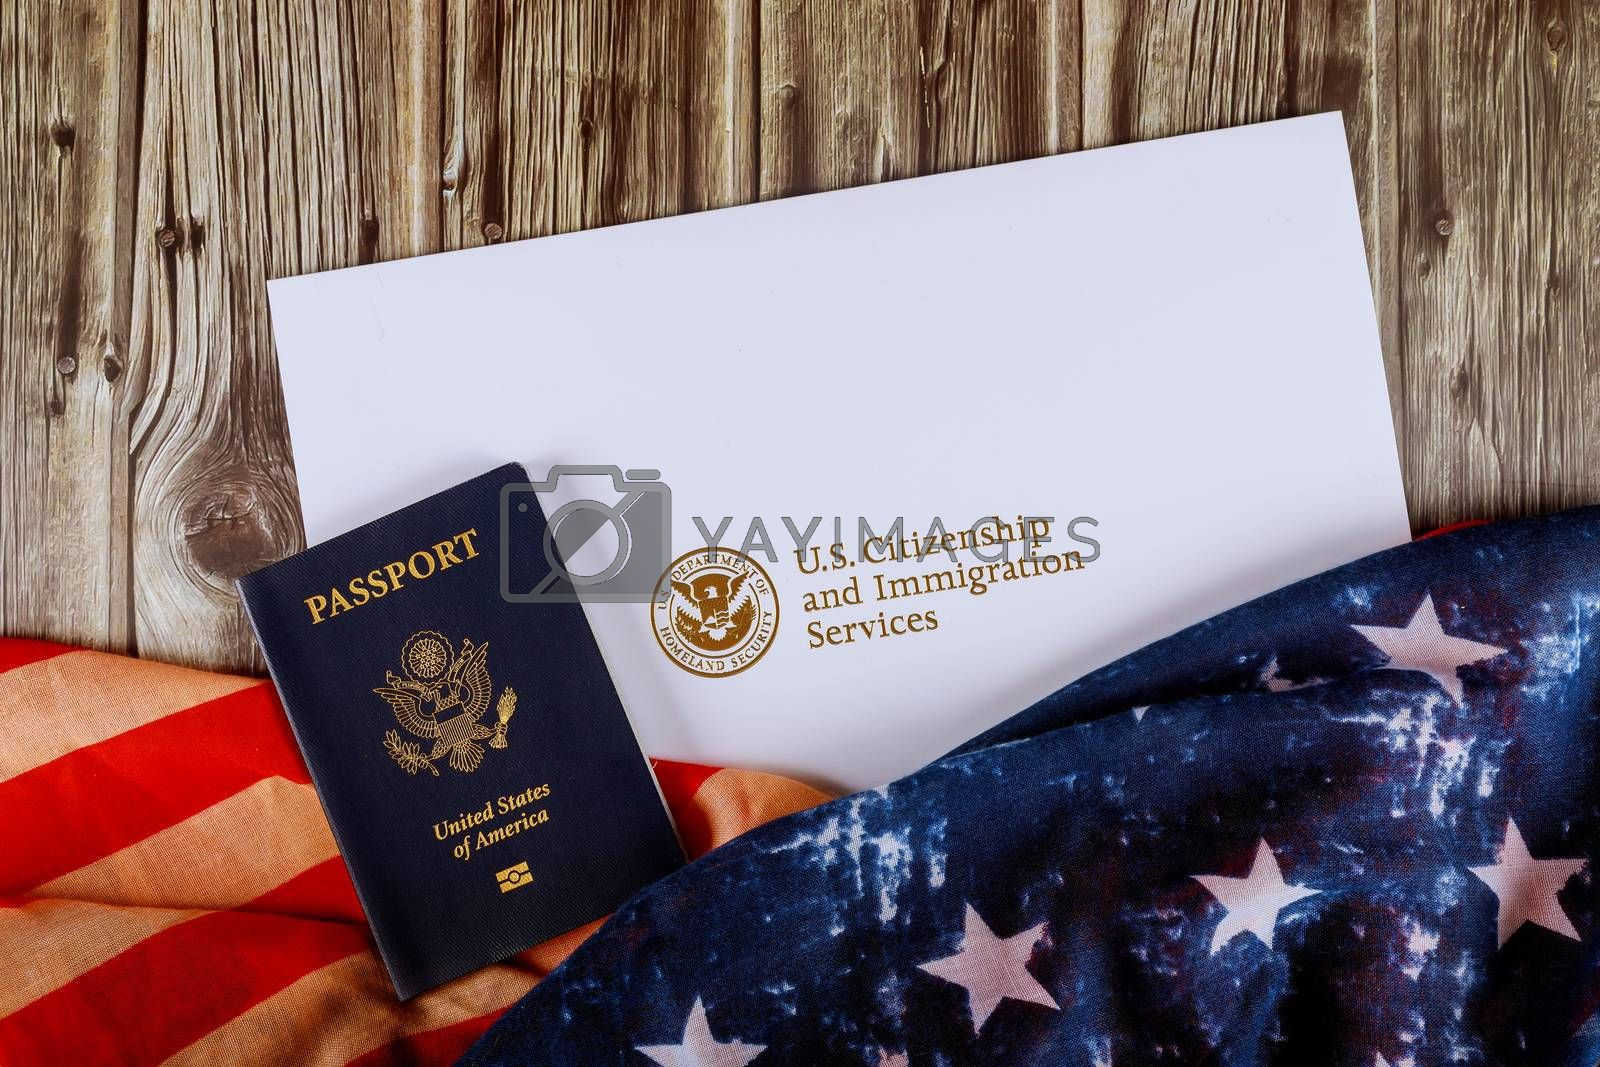 USA passport and naturalization certificate of citizenship US flag over wooden background by ungvar